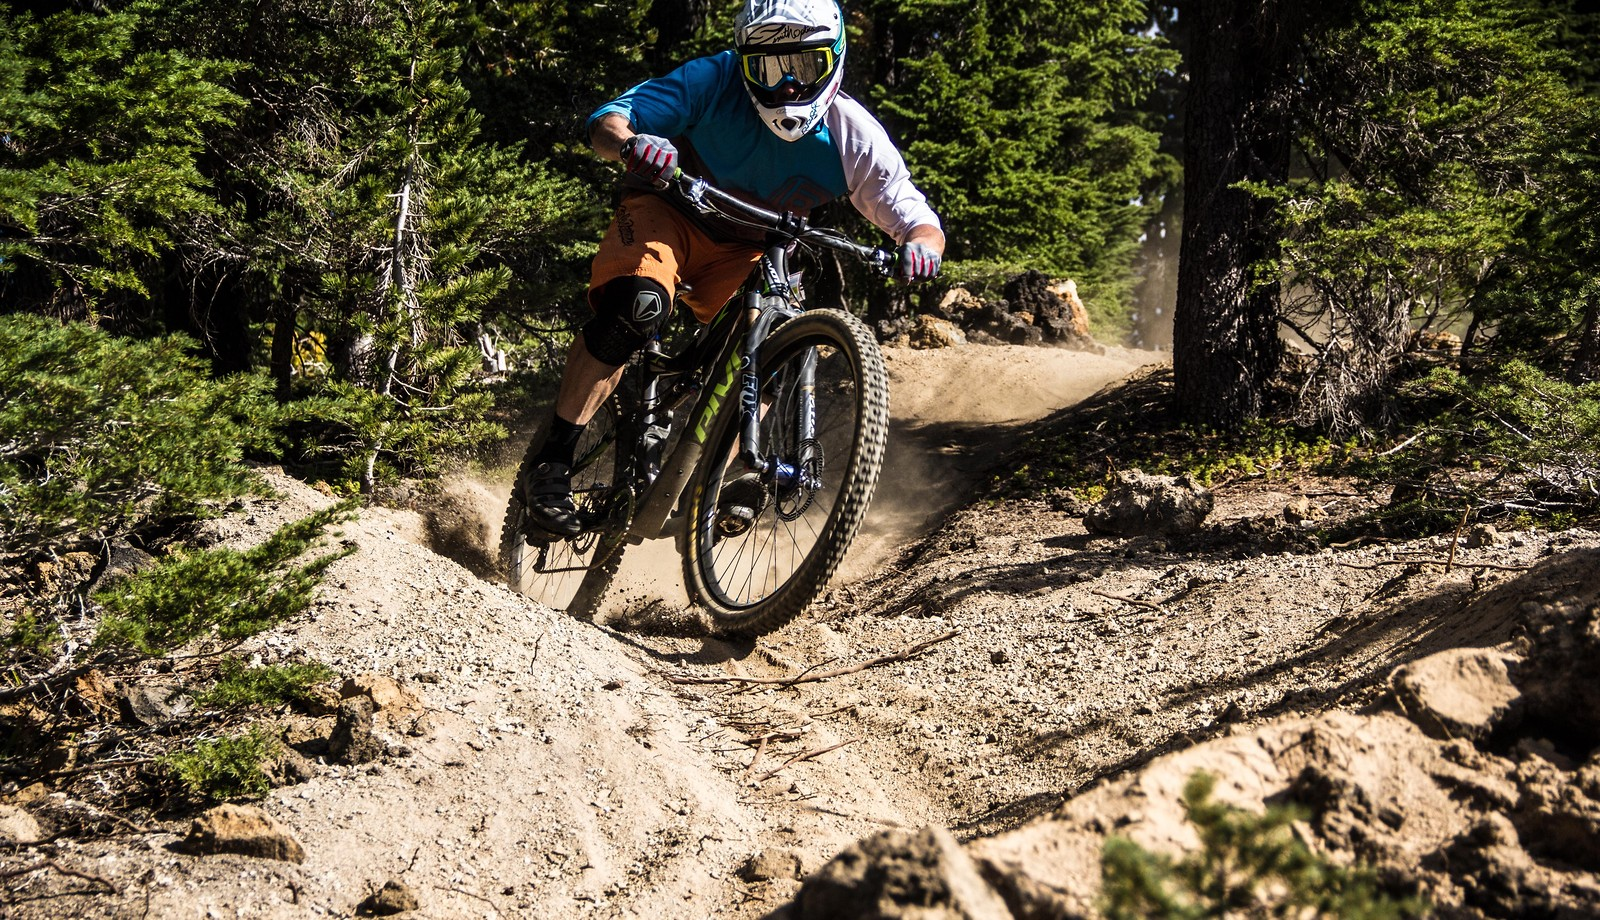 Smashin - Yuroshek - Mountain Biking Pictures - Vital MTB